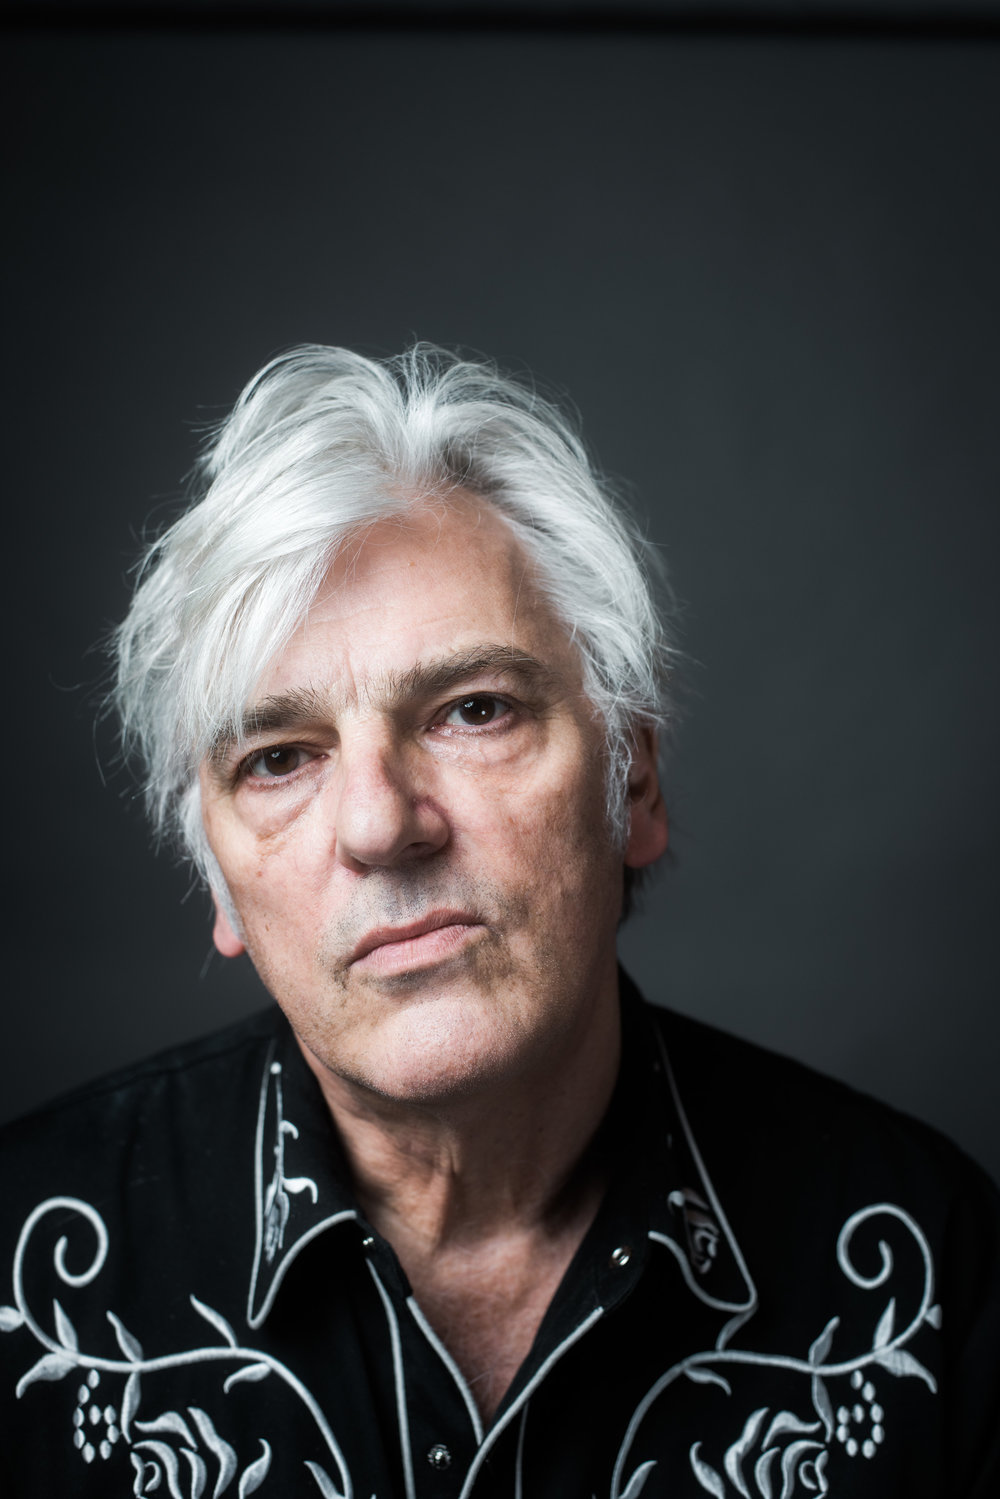 ROBYN HITCHCOCK. (UK)